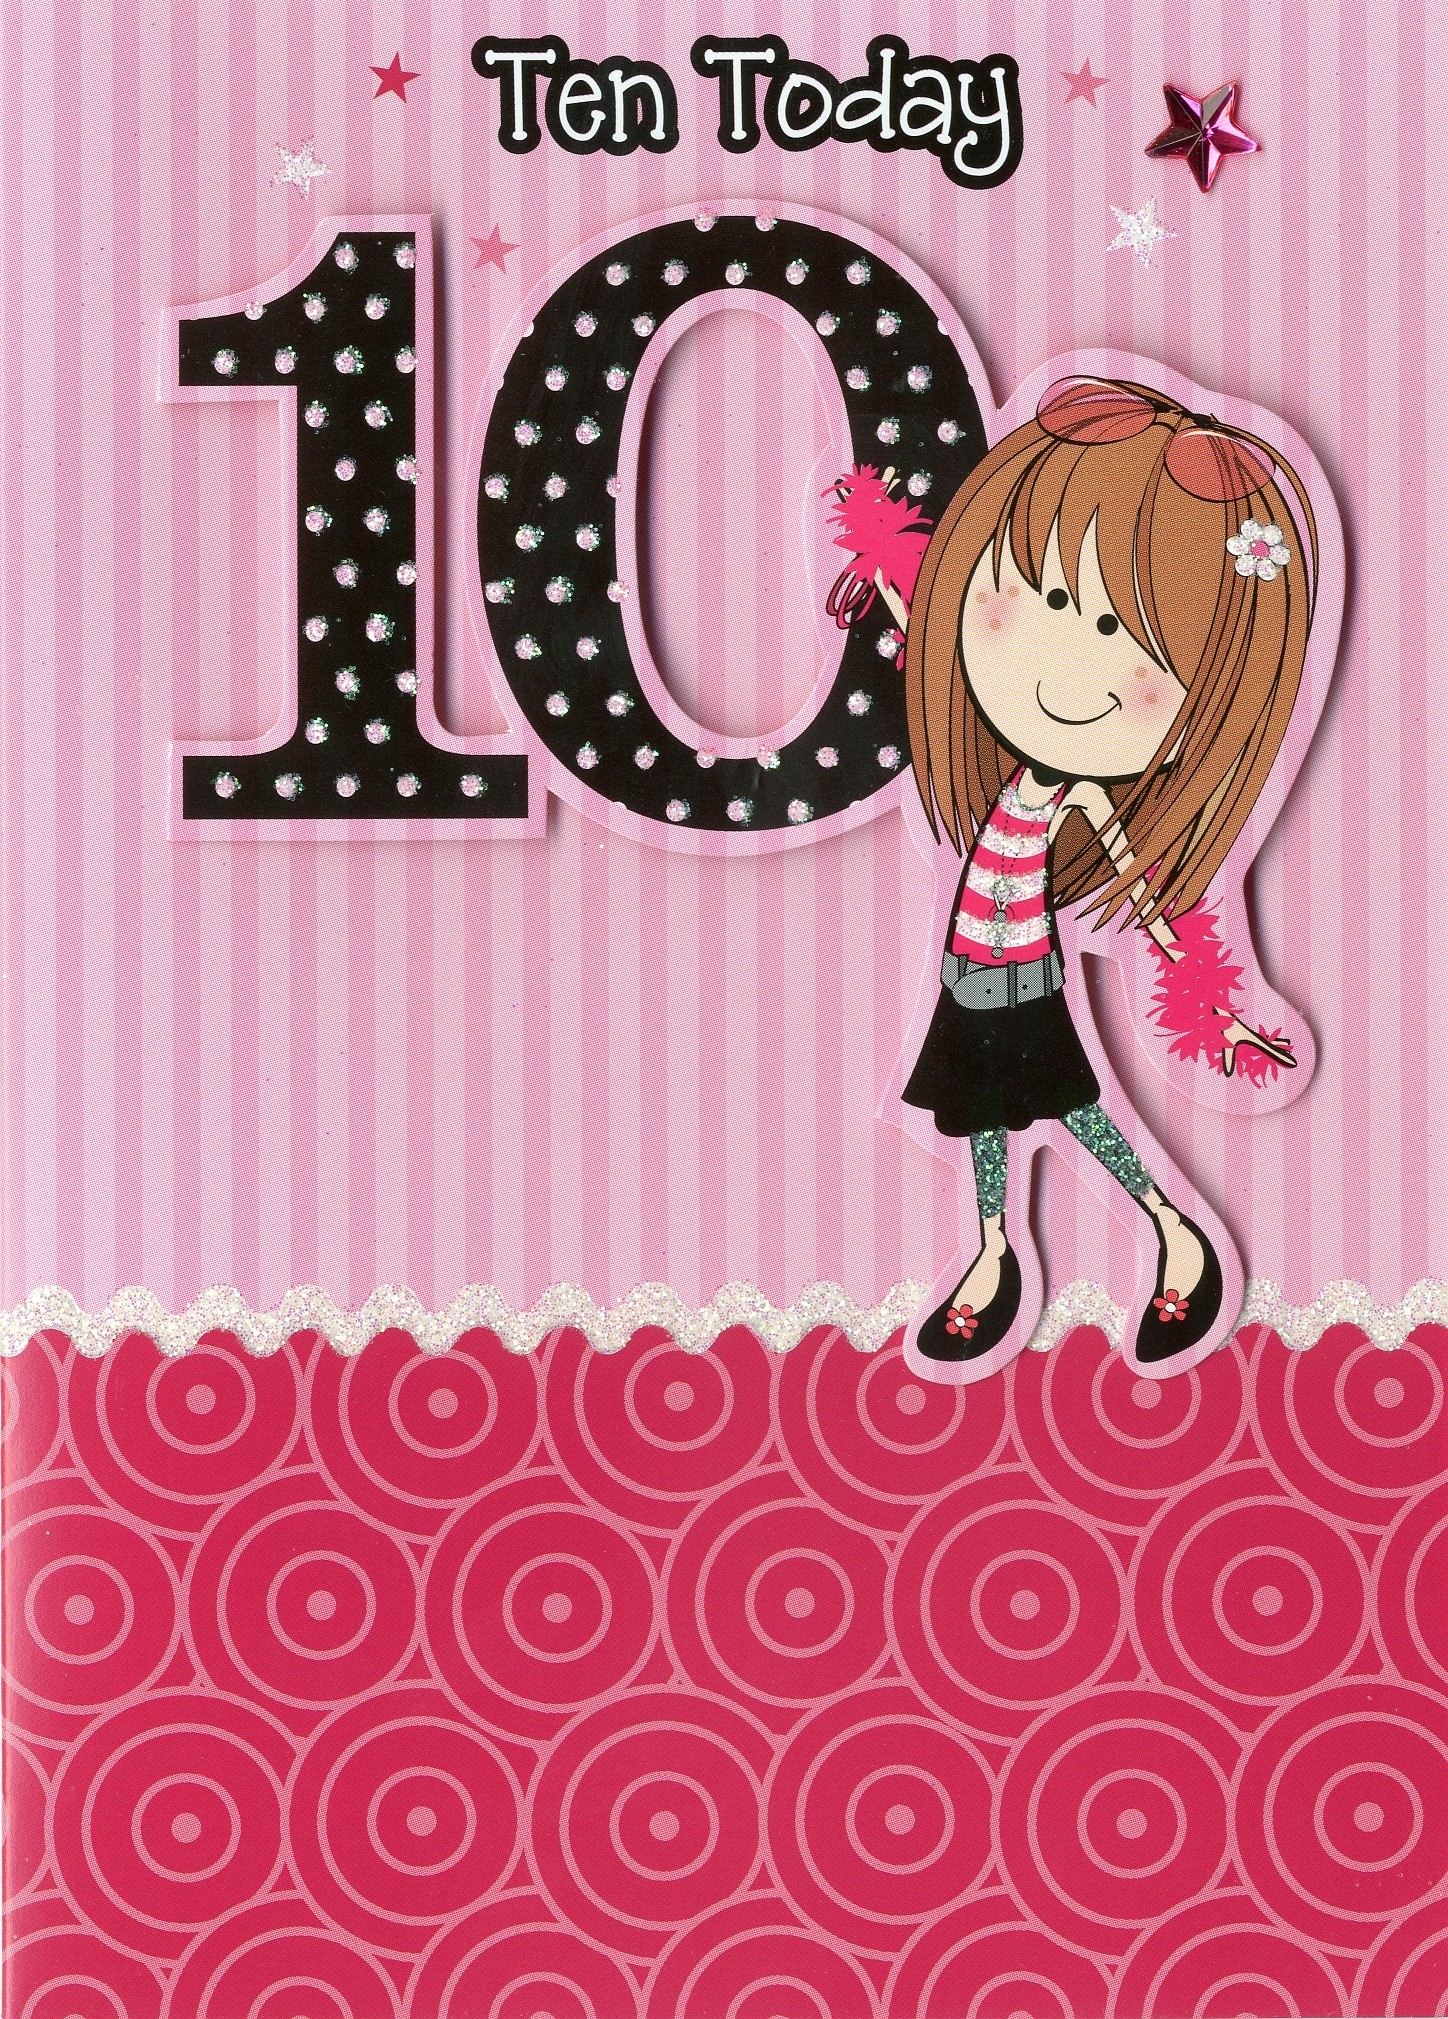 Girl Age 10 Birthday Card Fashion Girl SORRY OUT OF STOCK